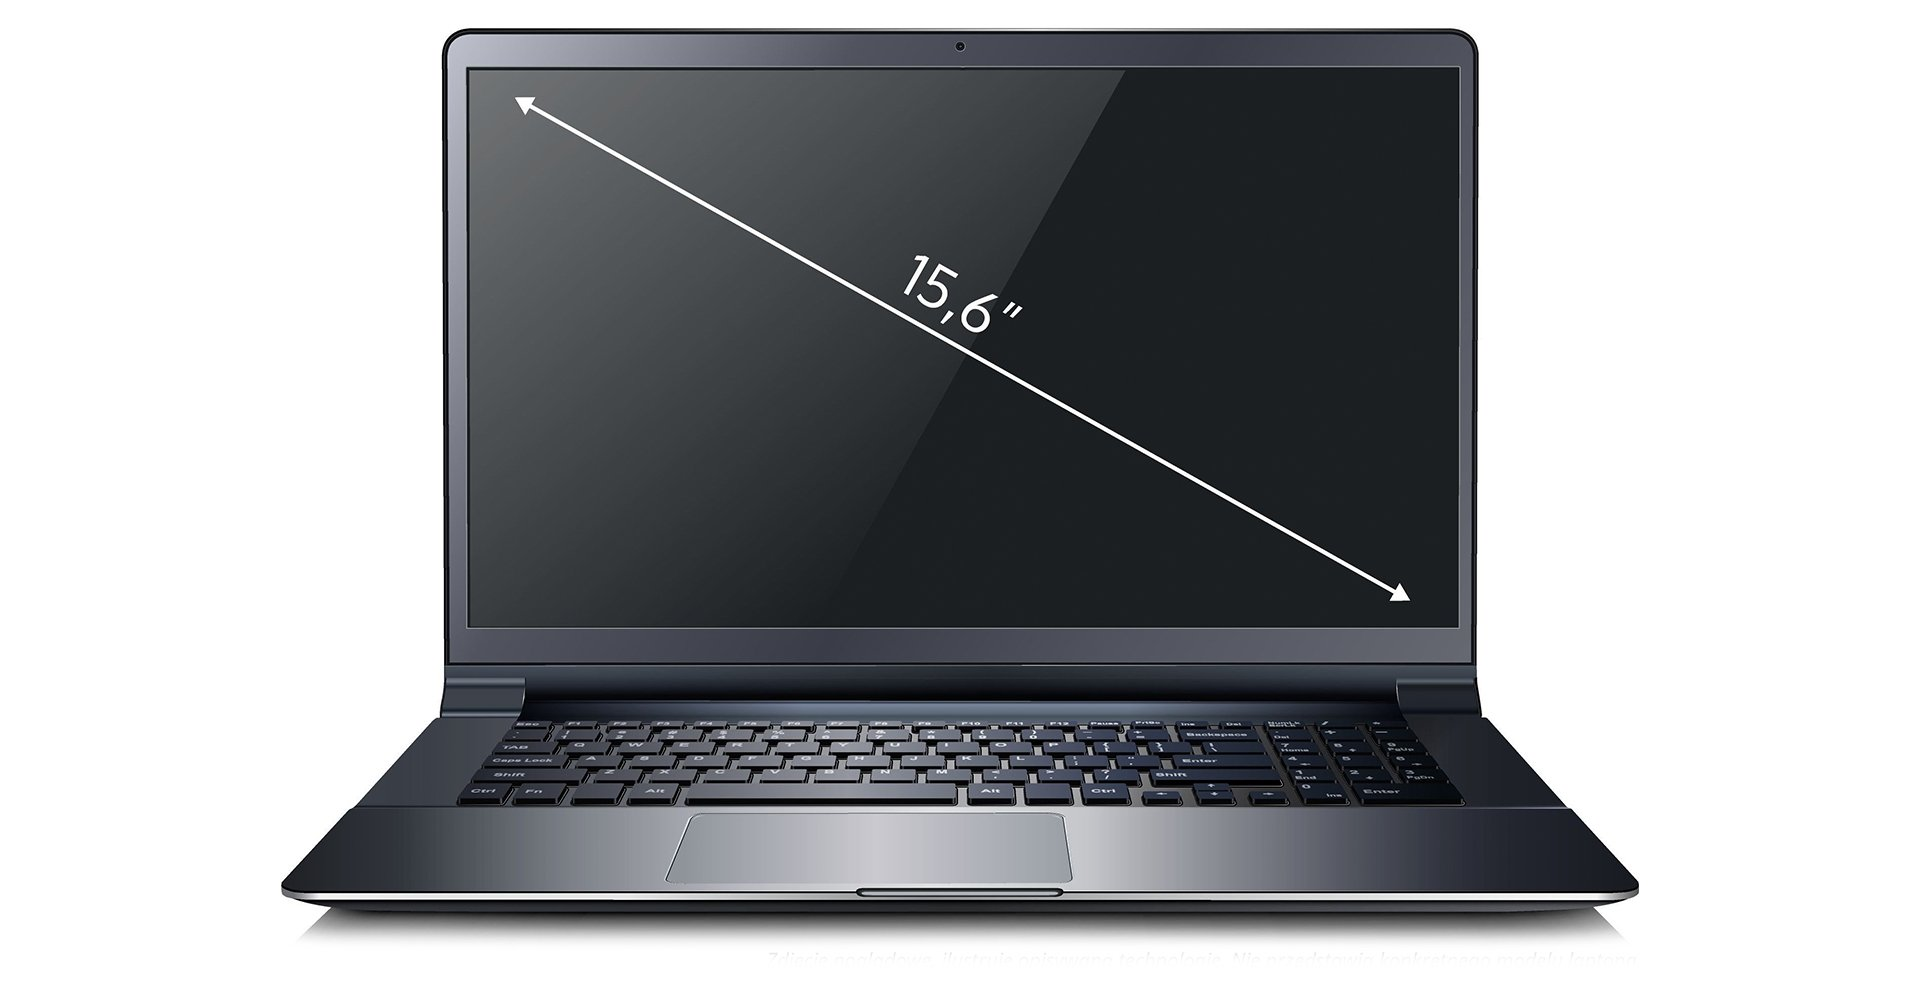 Dell Inspiron 15 5584 i5-8265U 8GB 256GB Linux                             15.6 collas pa diagonāli